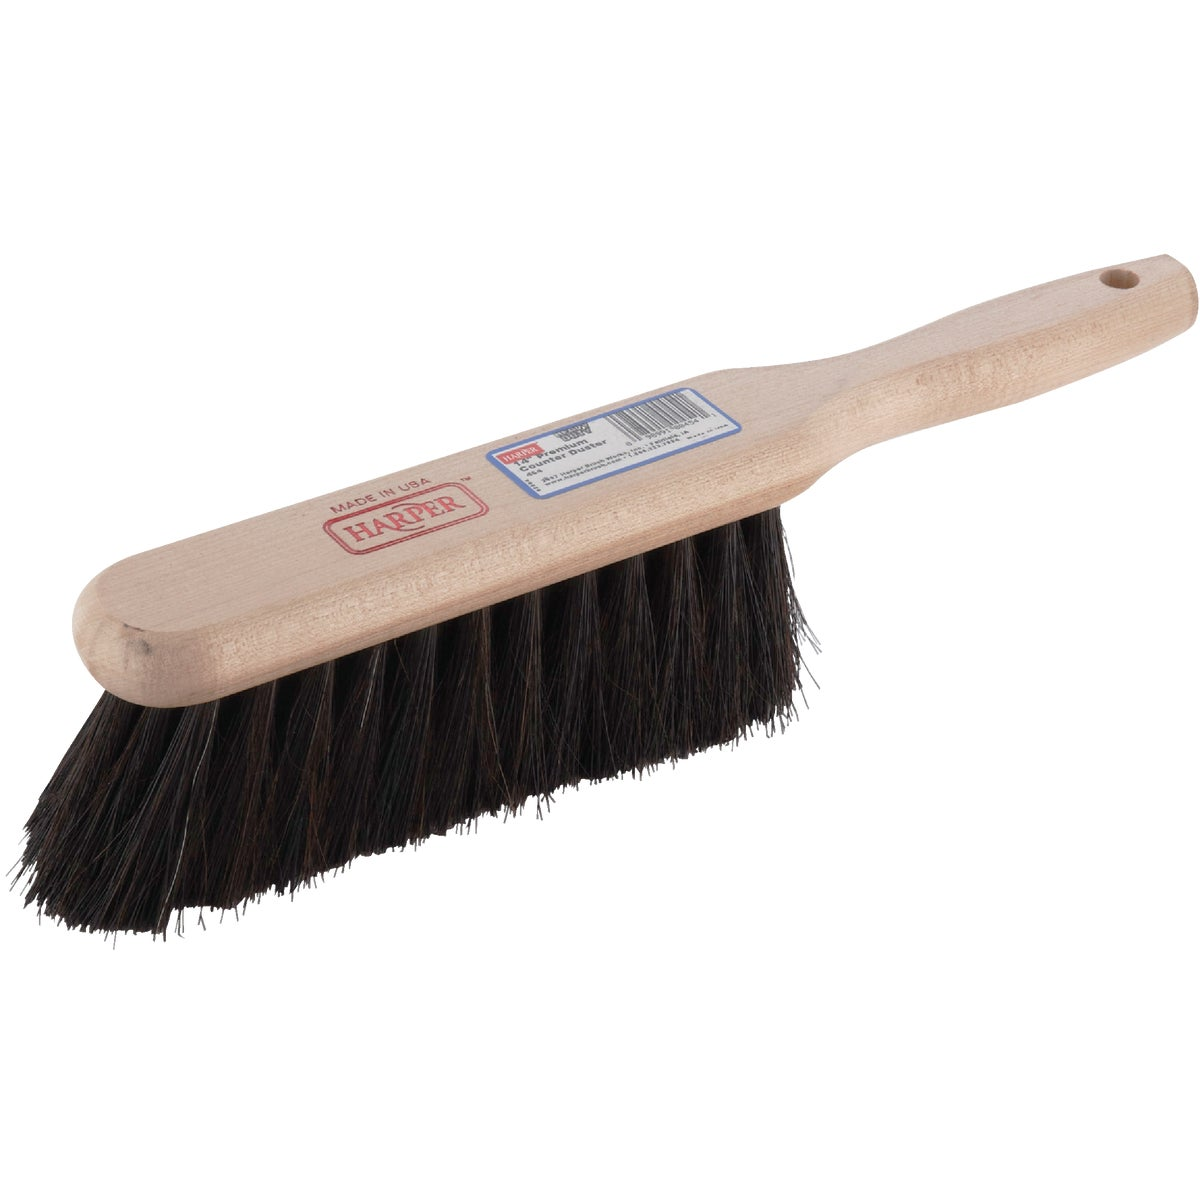 HORSE HAIR DUSTER - H454 by Harper Brush Incom